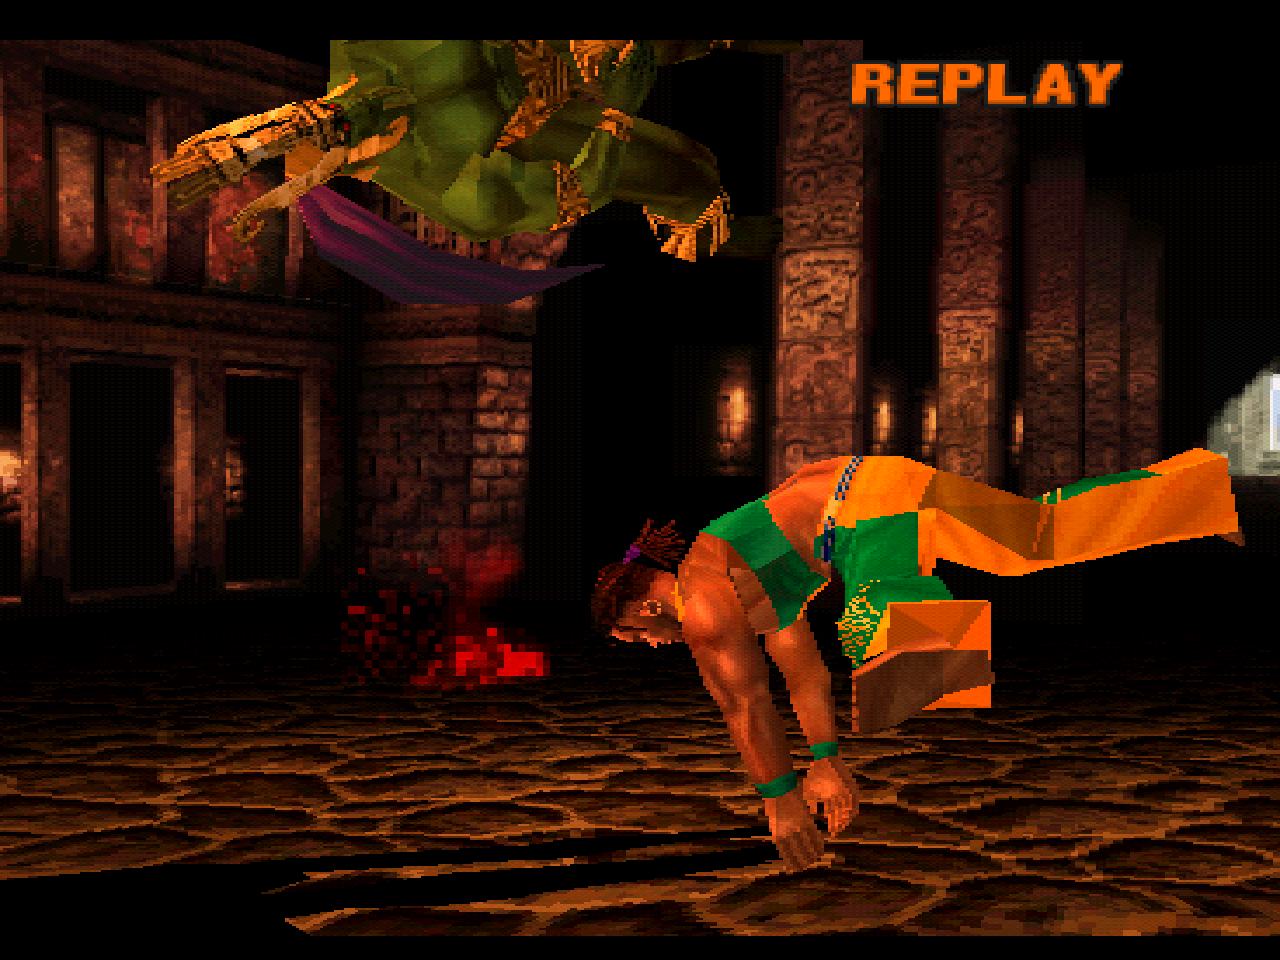 https://s3.eu-west-3.amazonaws.com/games.anthony-dessalles.com/Tekken 3 PS1 2020 - Screenshots/Tekken 3-201204-182333.png